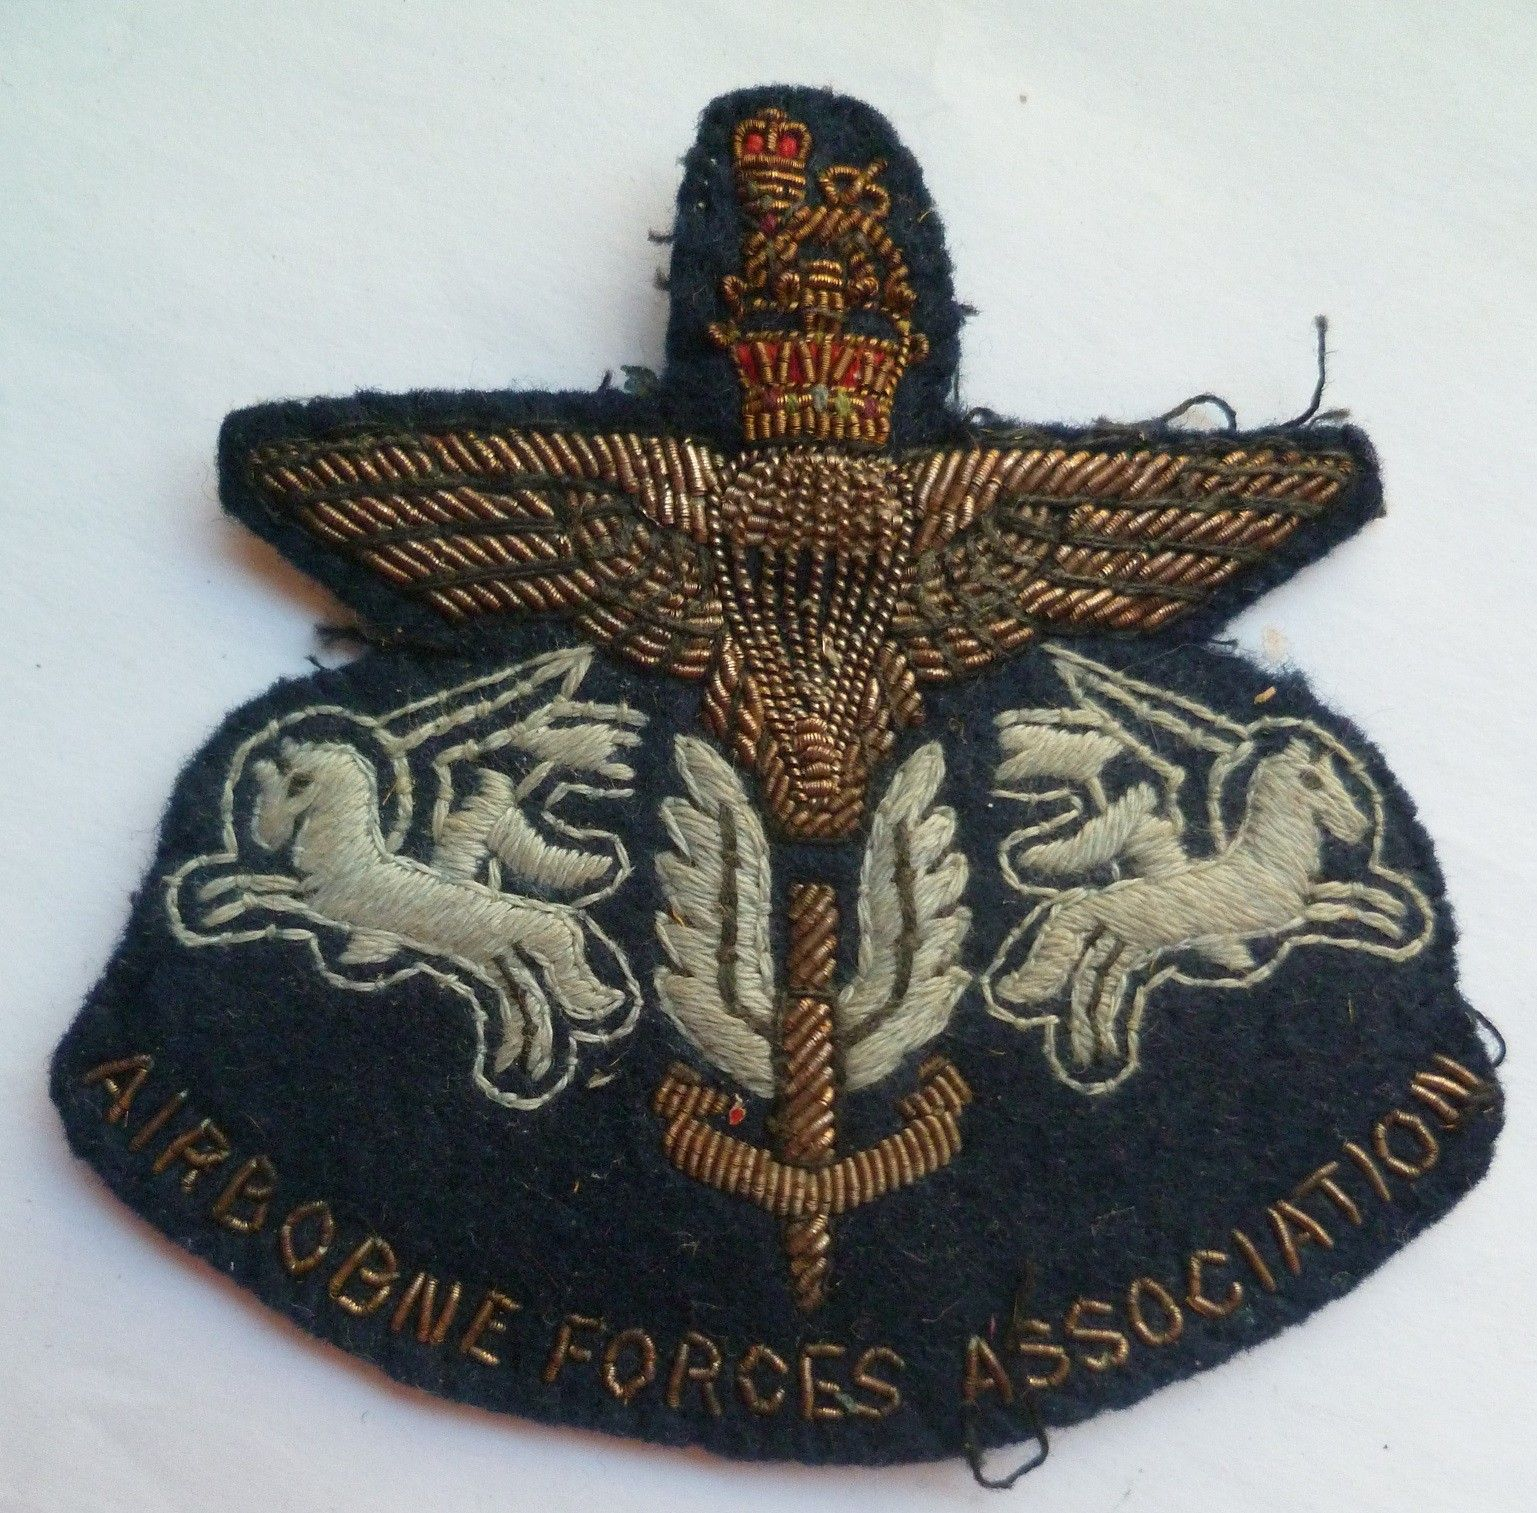 Airborne Forces Association Cloth Bullion Badge A nice